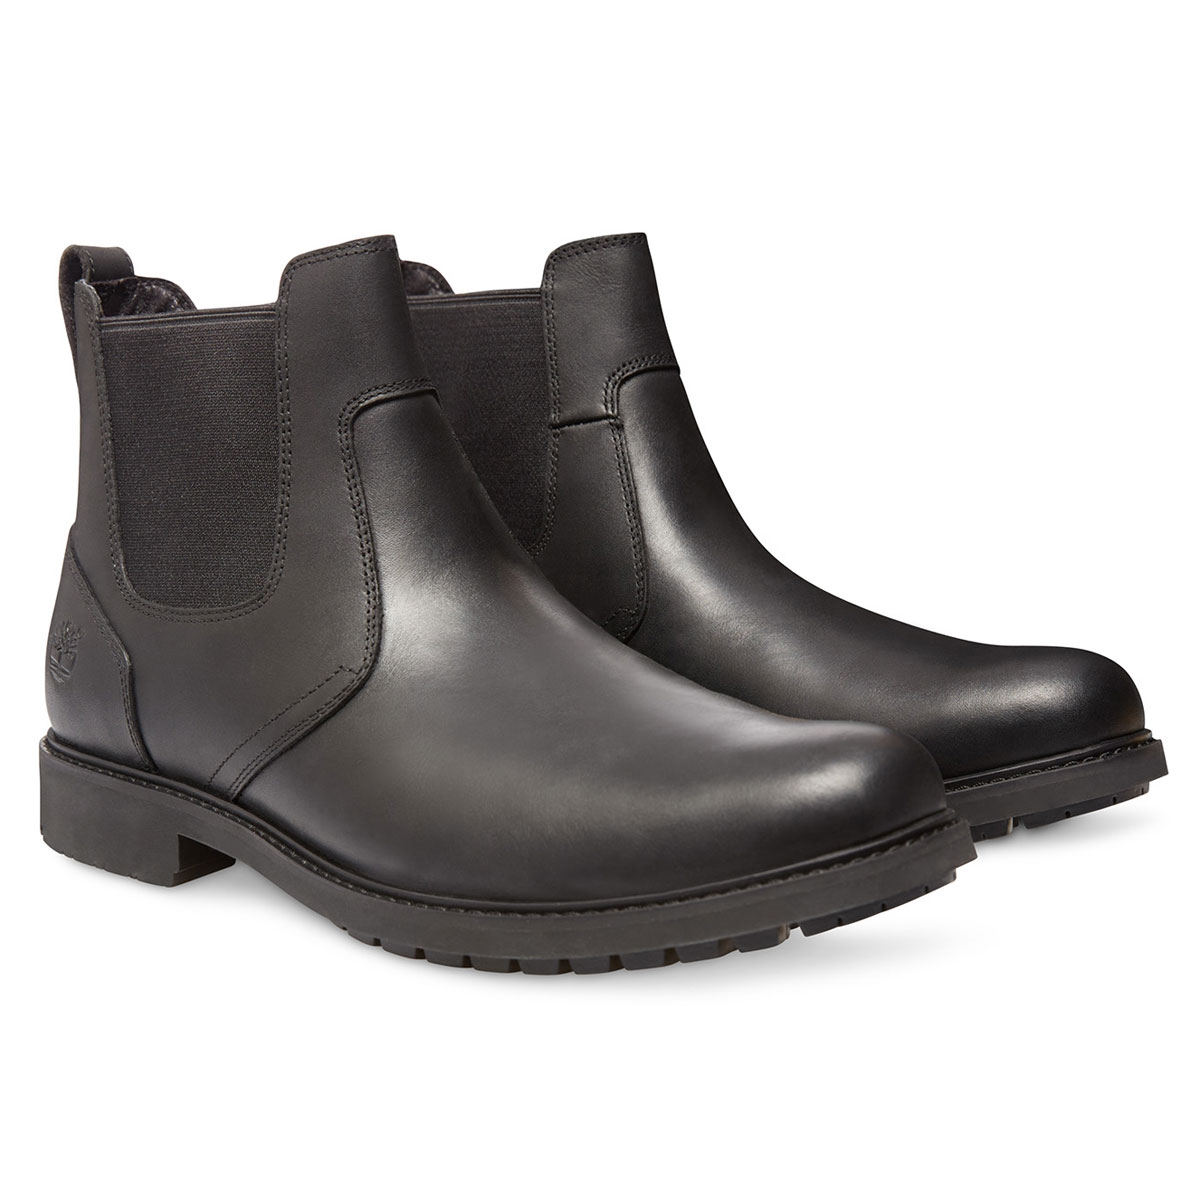 3b1a4798f54a Image of Timberland Earthkeepers Stormbuck Chelsea Boot (Men s) - Black